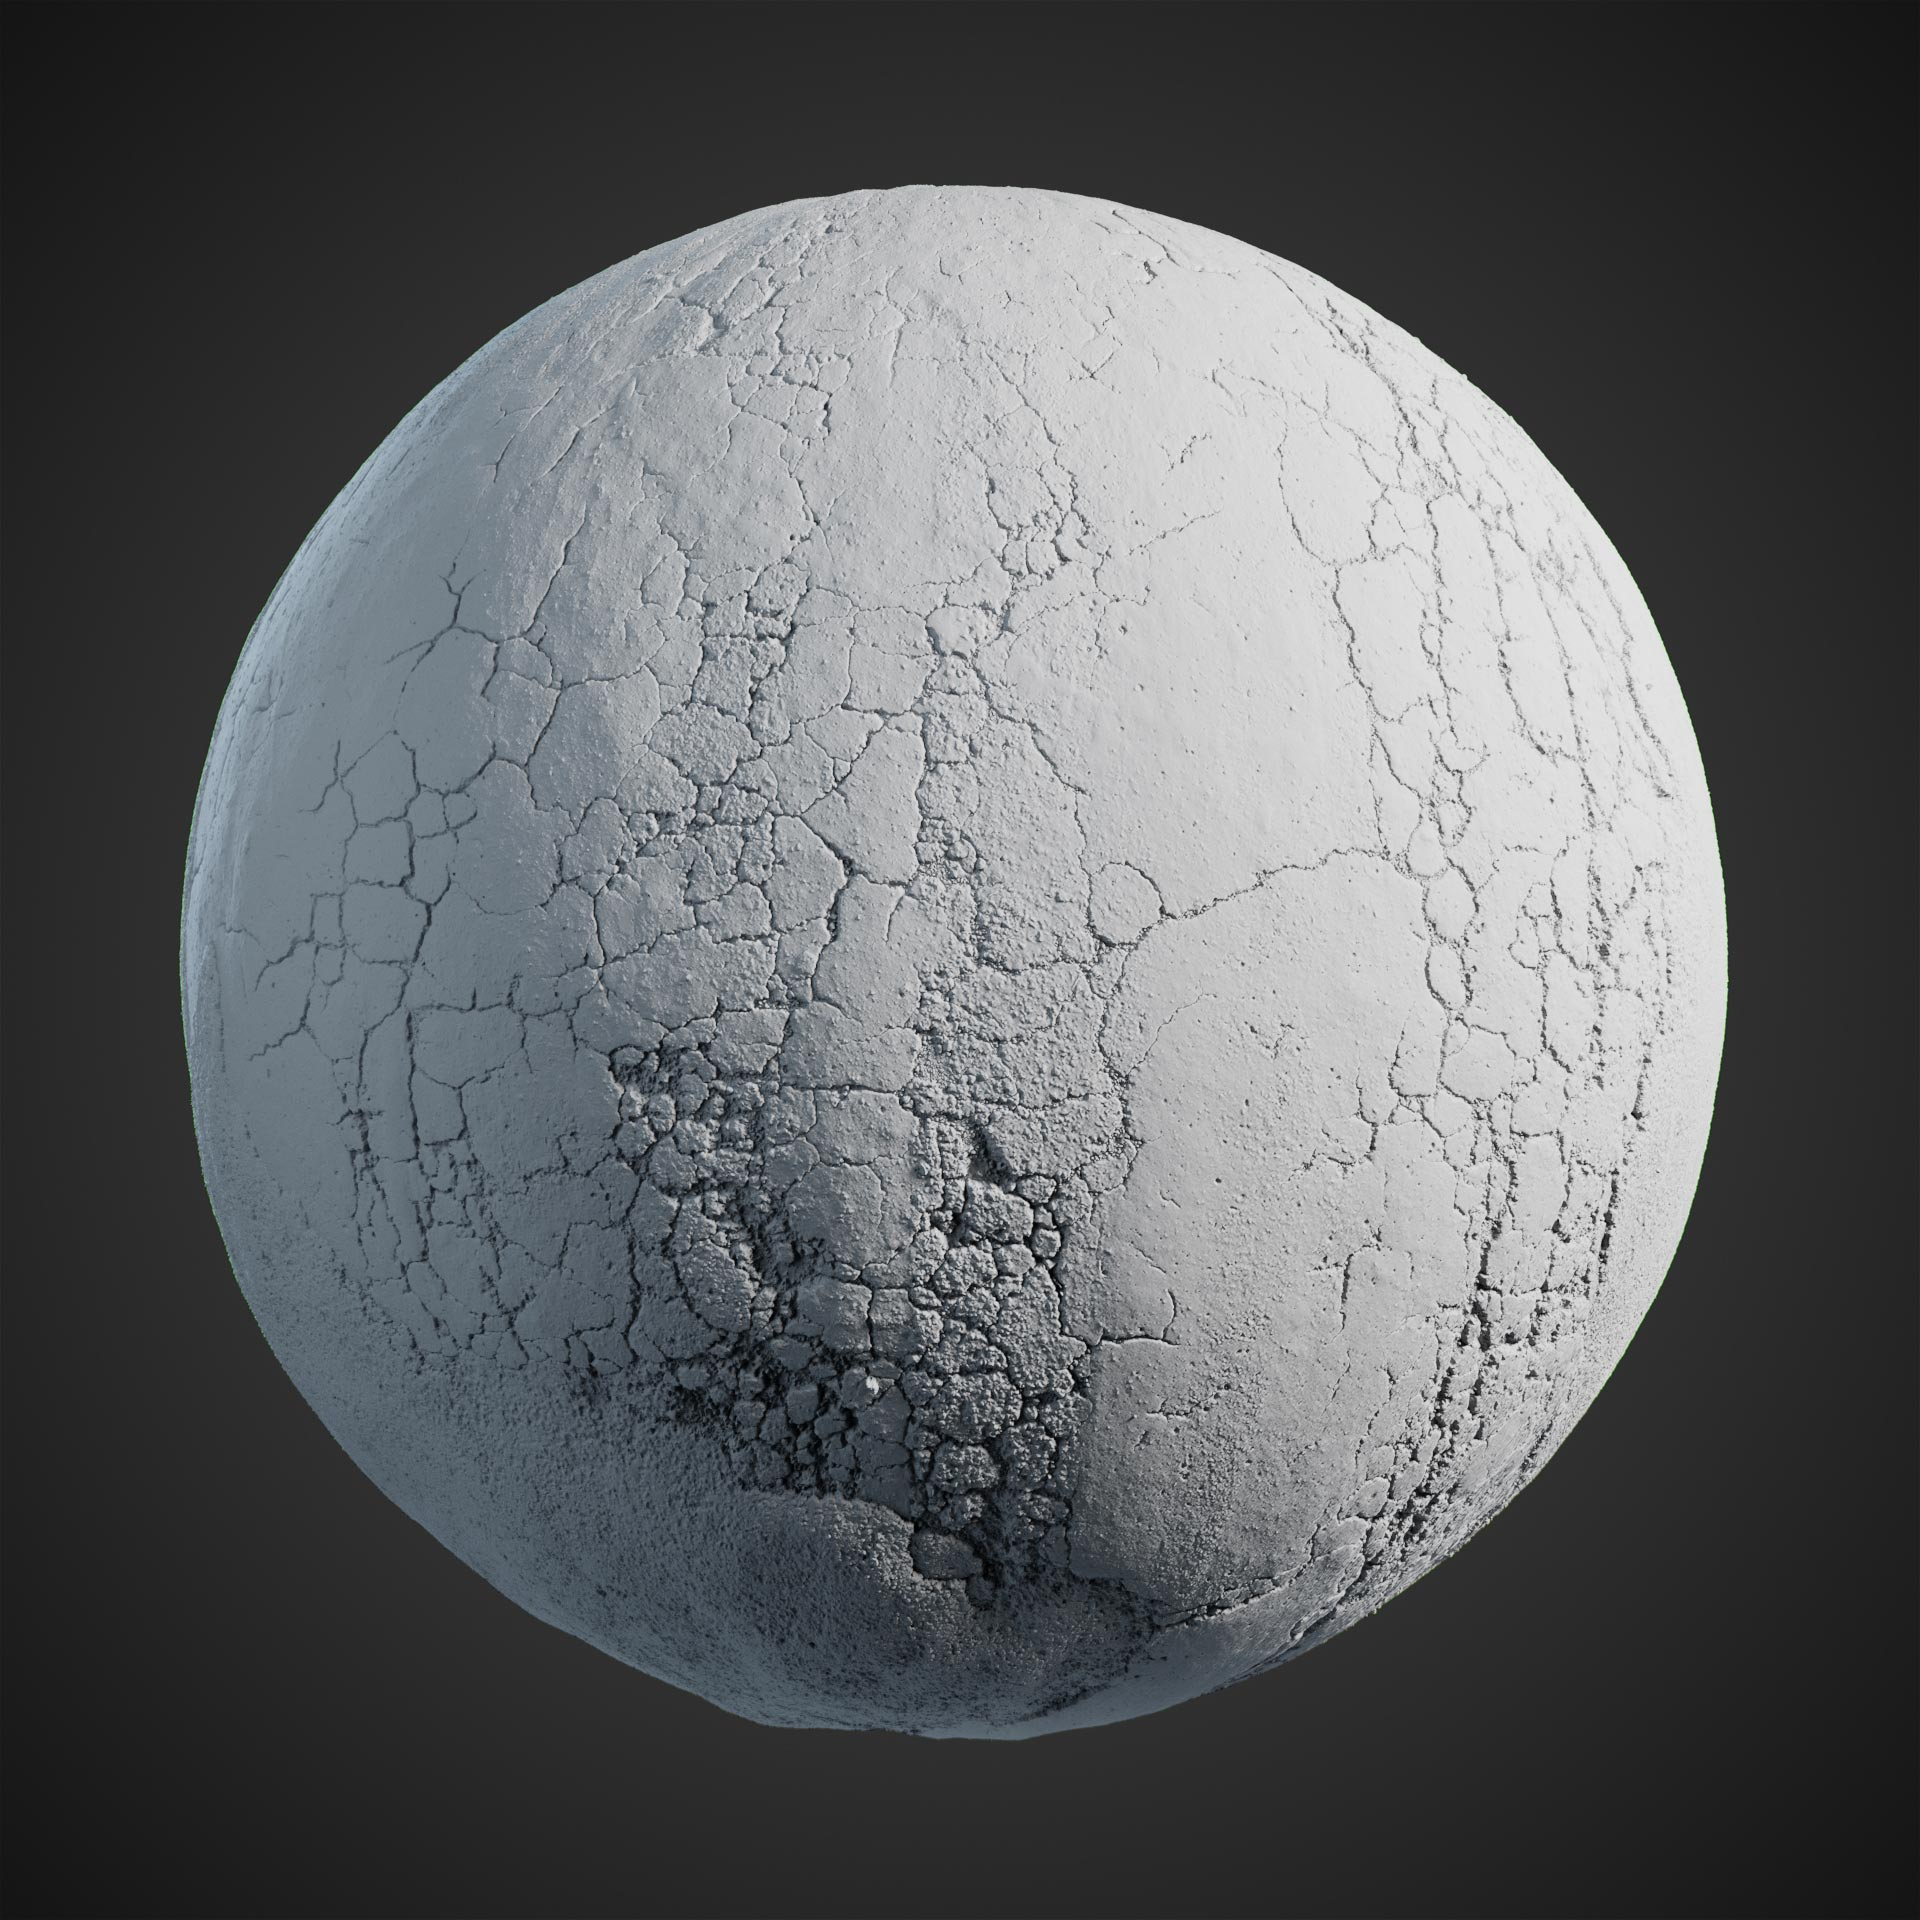 The image shows a clay sphere with our road asphalt 02 texture.